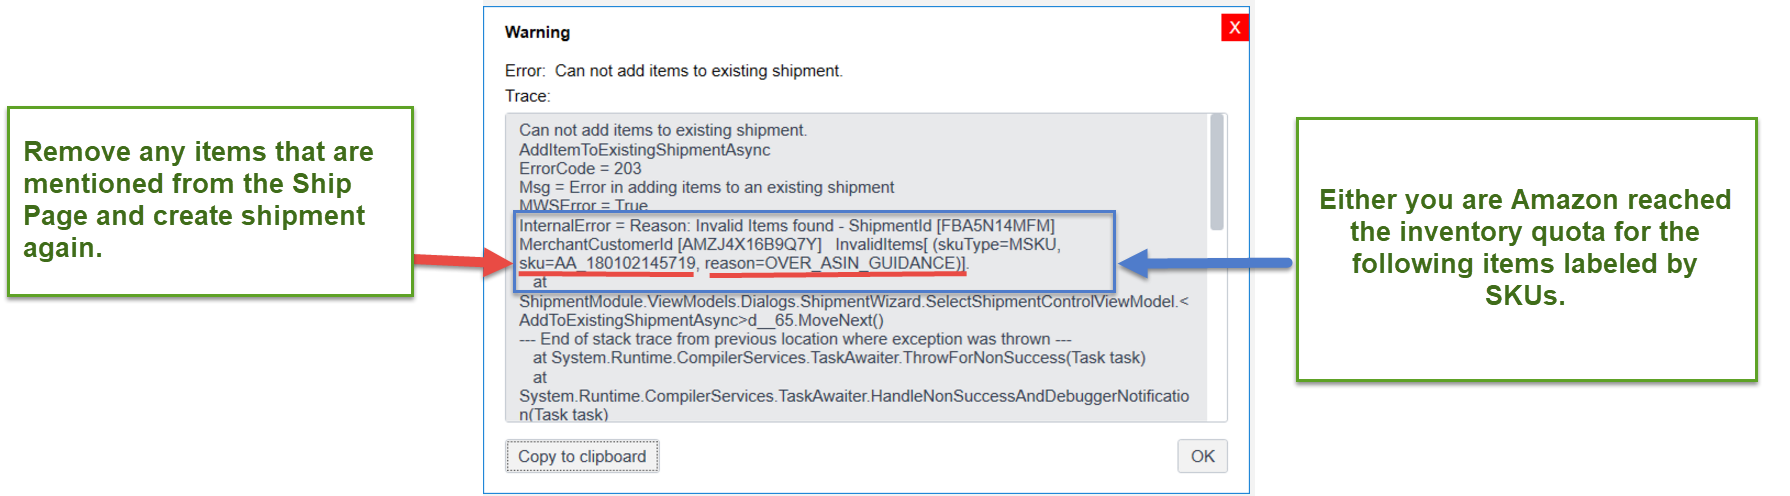 OVER_ASIN_GUIDANCE Error when adding an item to FBA